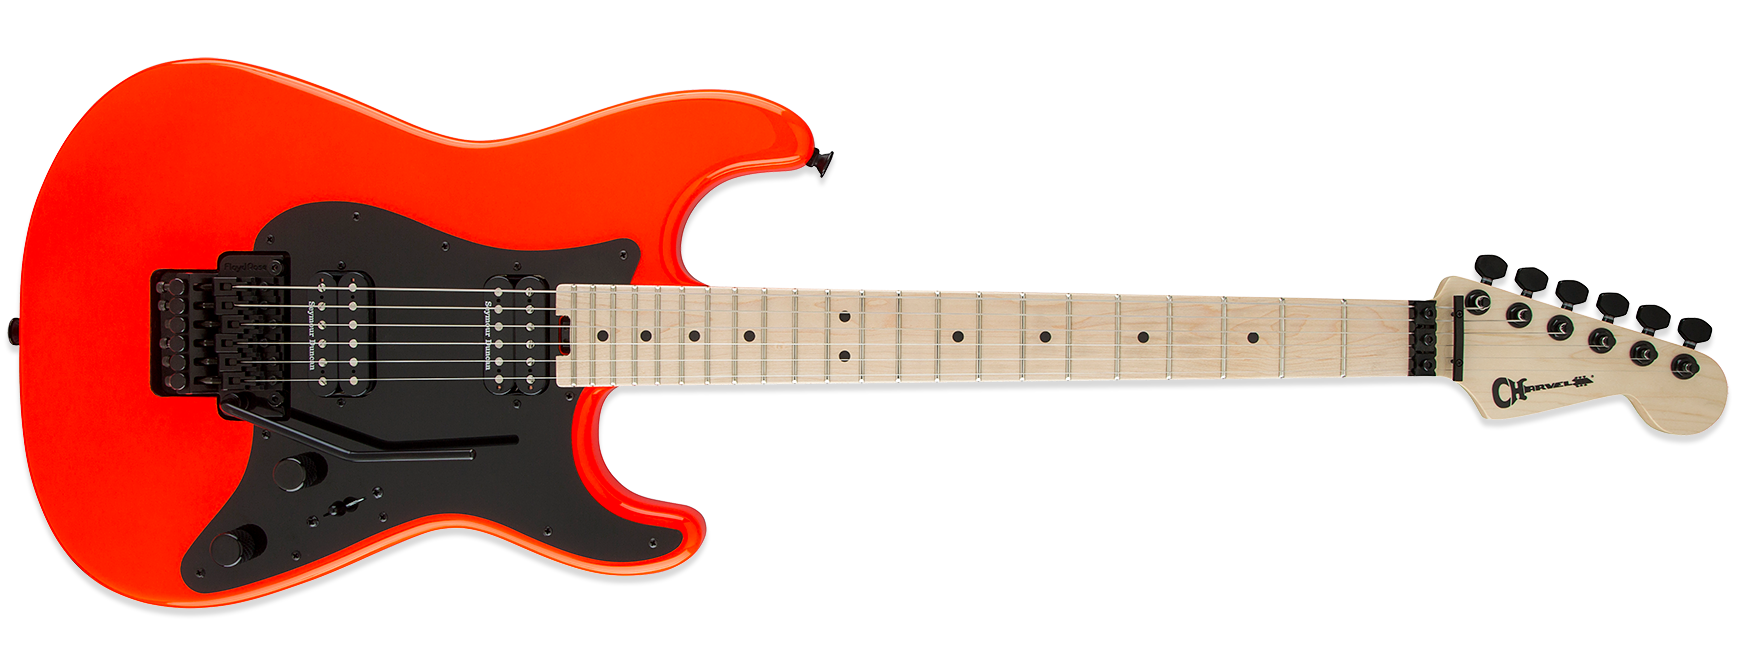 PRESS RELEASE: The Charvel Pro-Mod So-Cal Style 1 HH FR Rocket Red